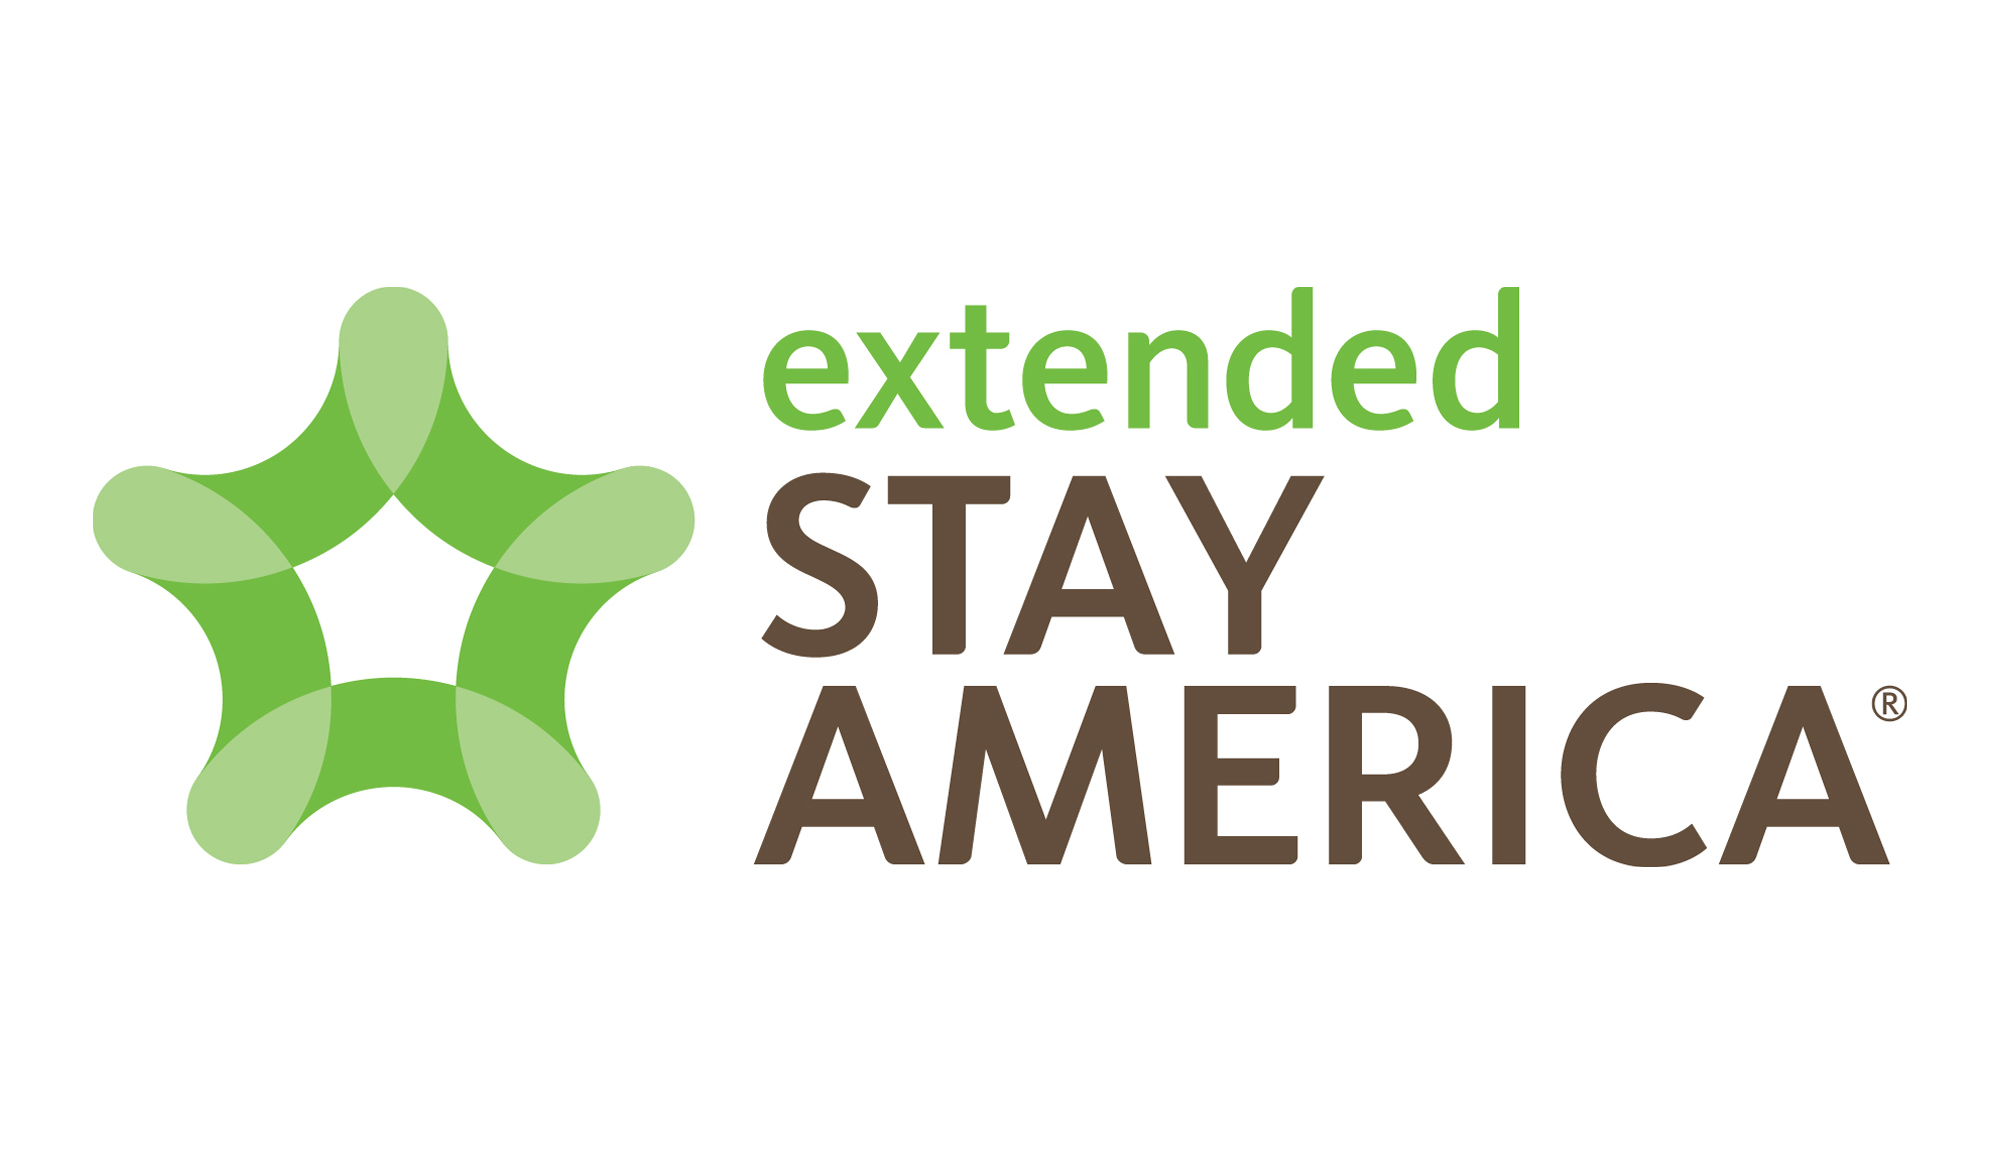 Extended Stay America hotel logo